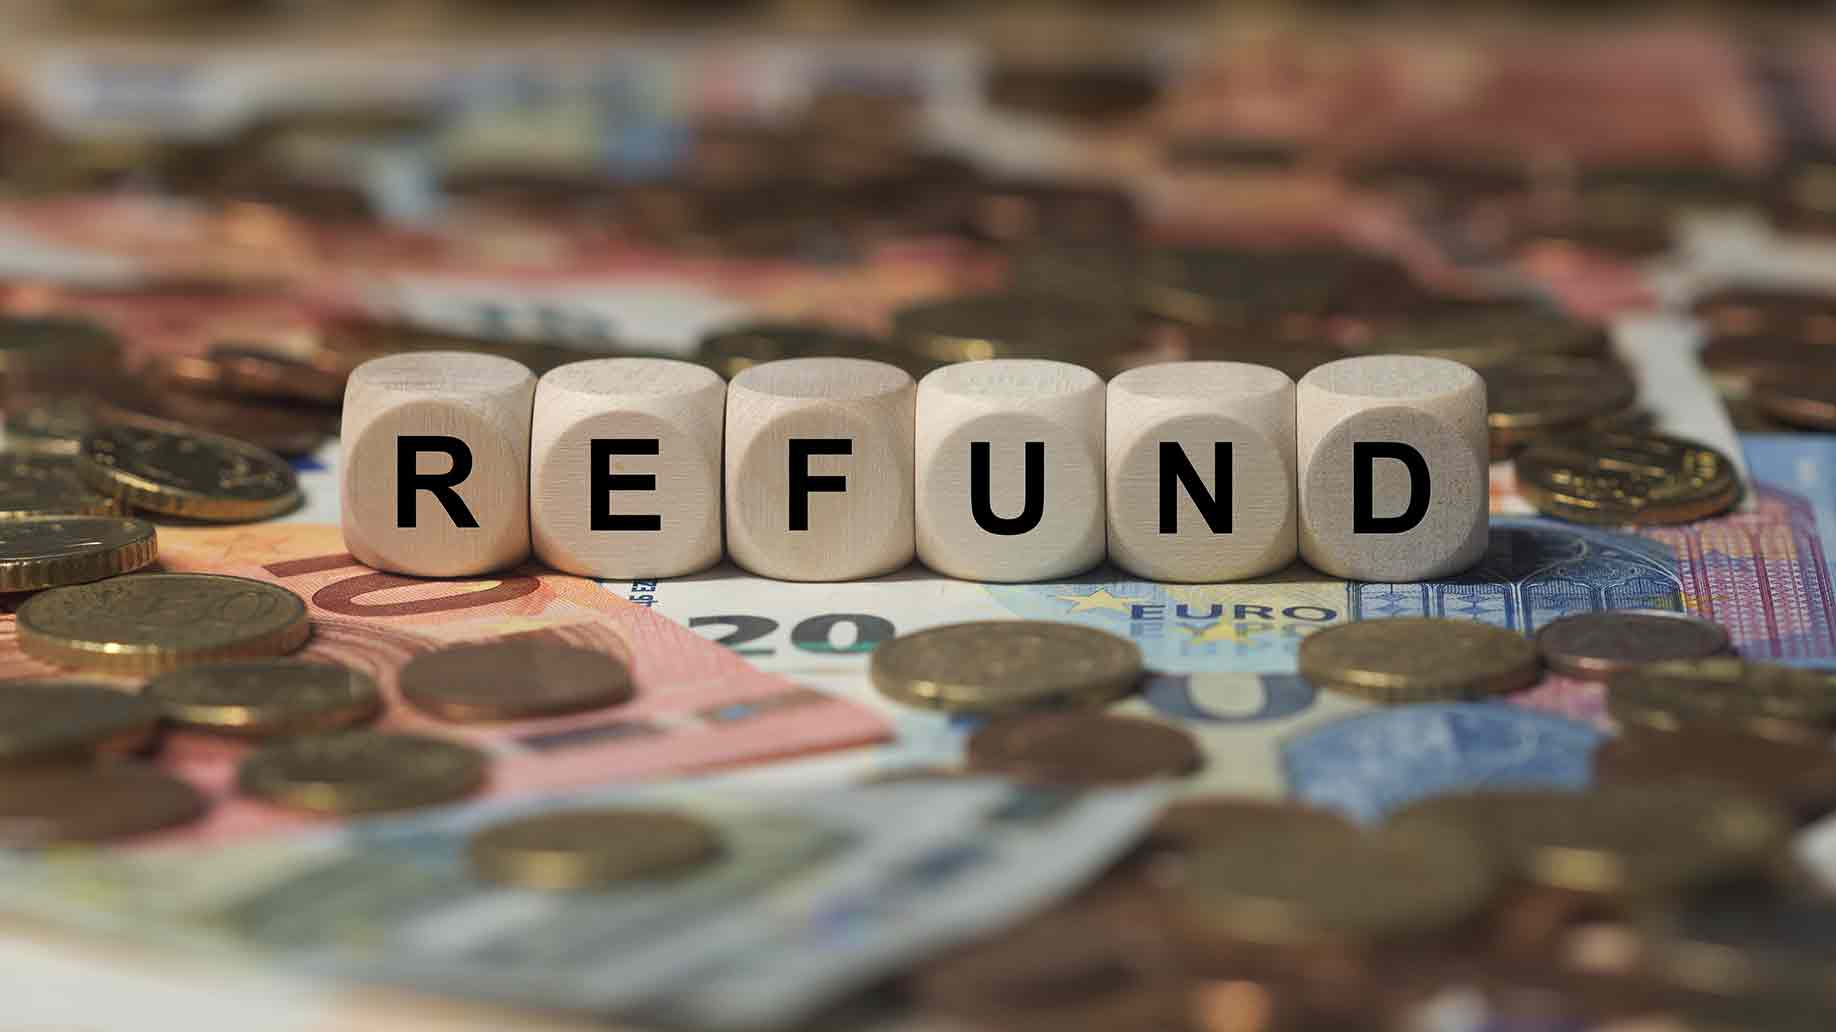 819af1e1a4 Groupon s refund policy varies by product type. According to the Groupon  Promise